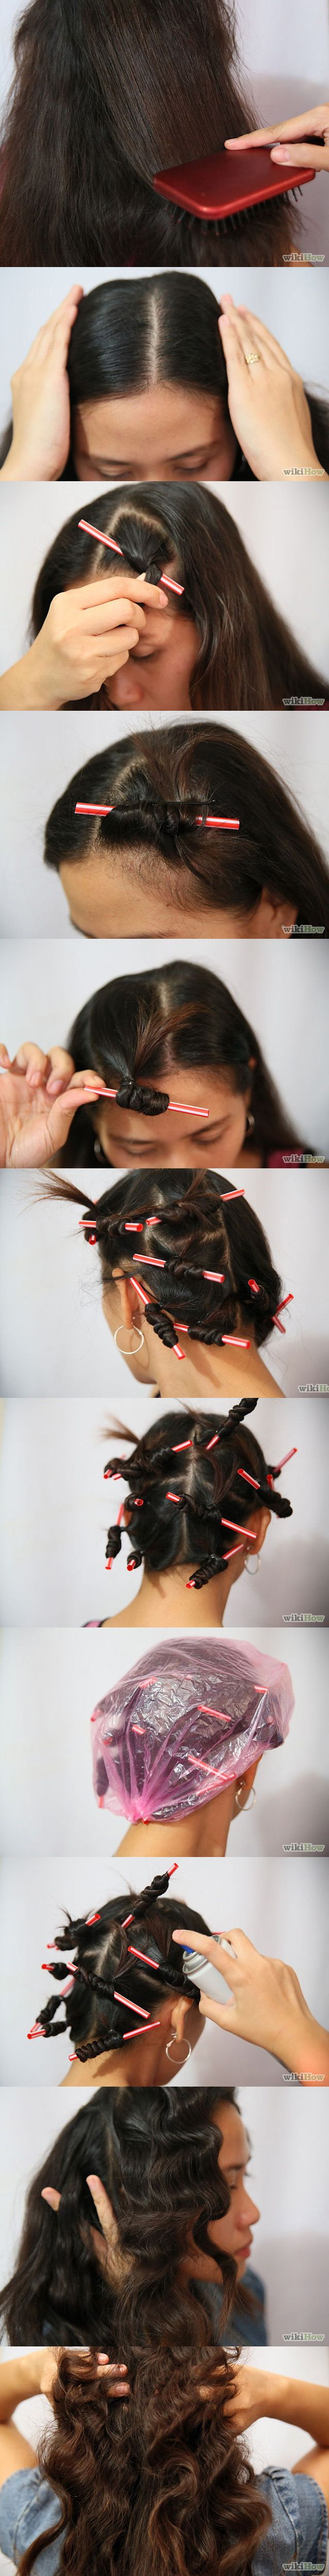 Curls with straws